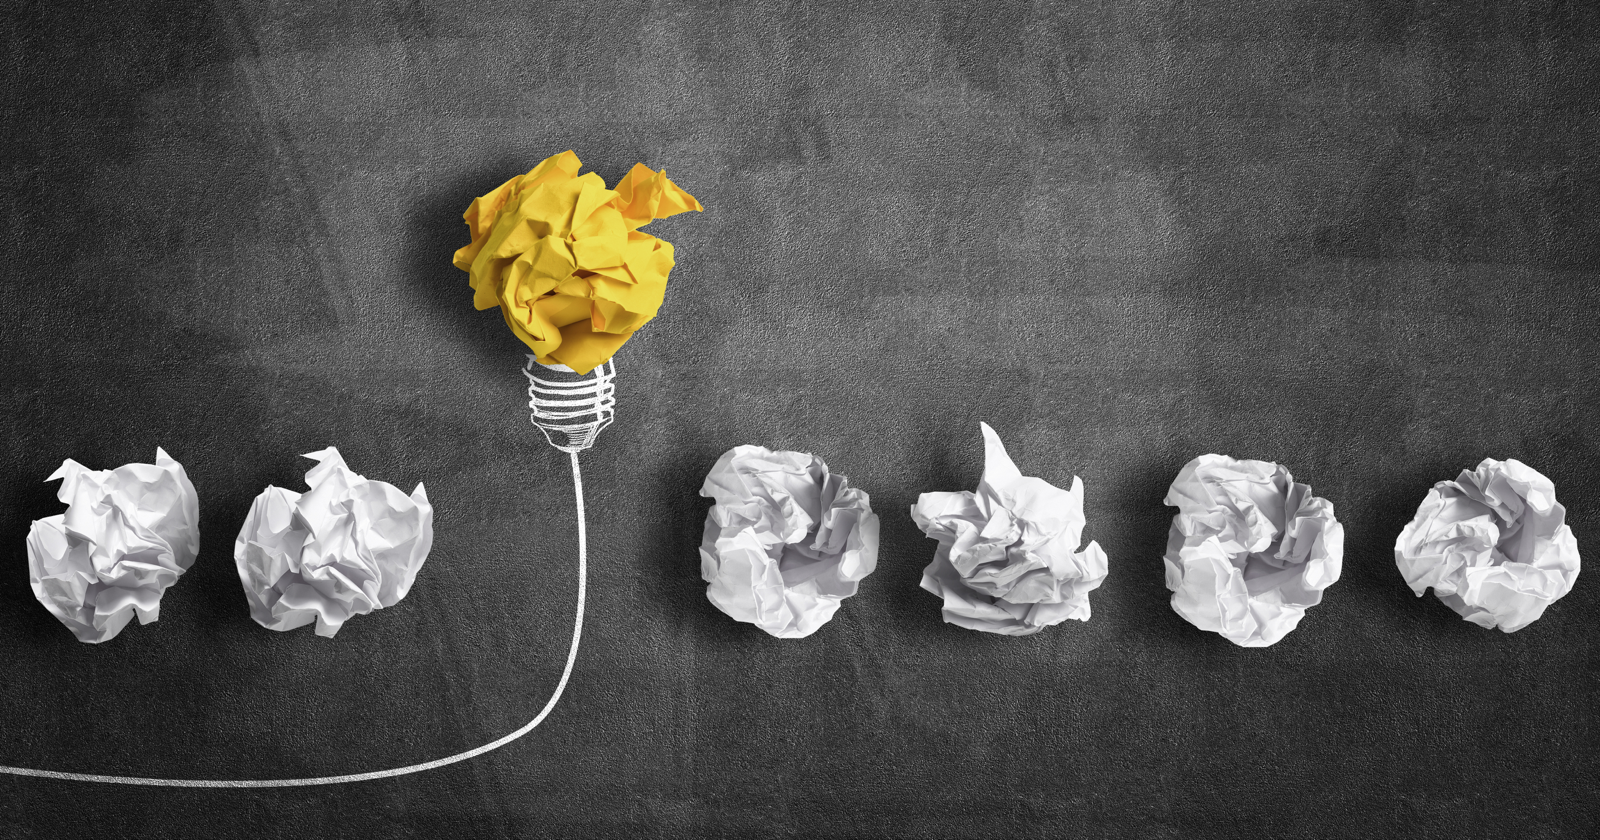 Check Your Idea Chances to Become Successful - Blog S-PRO